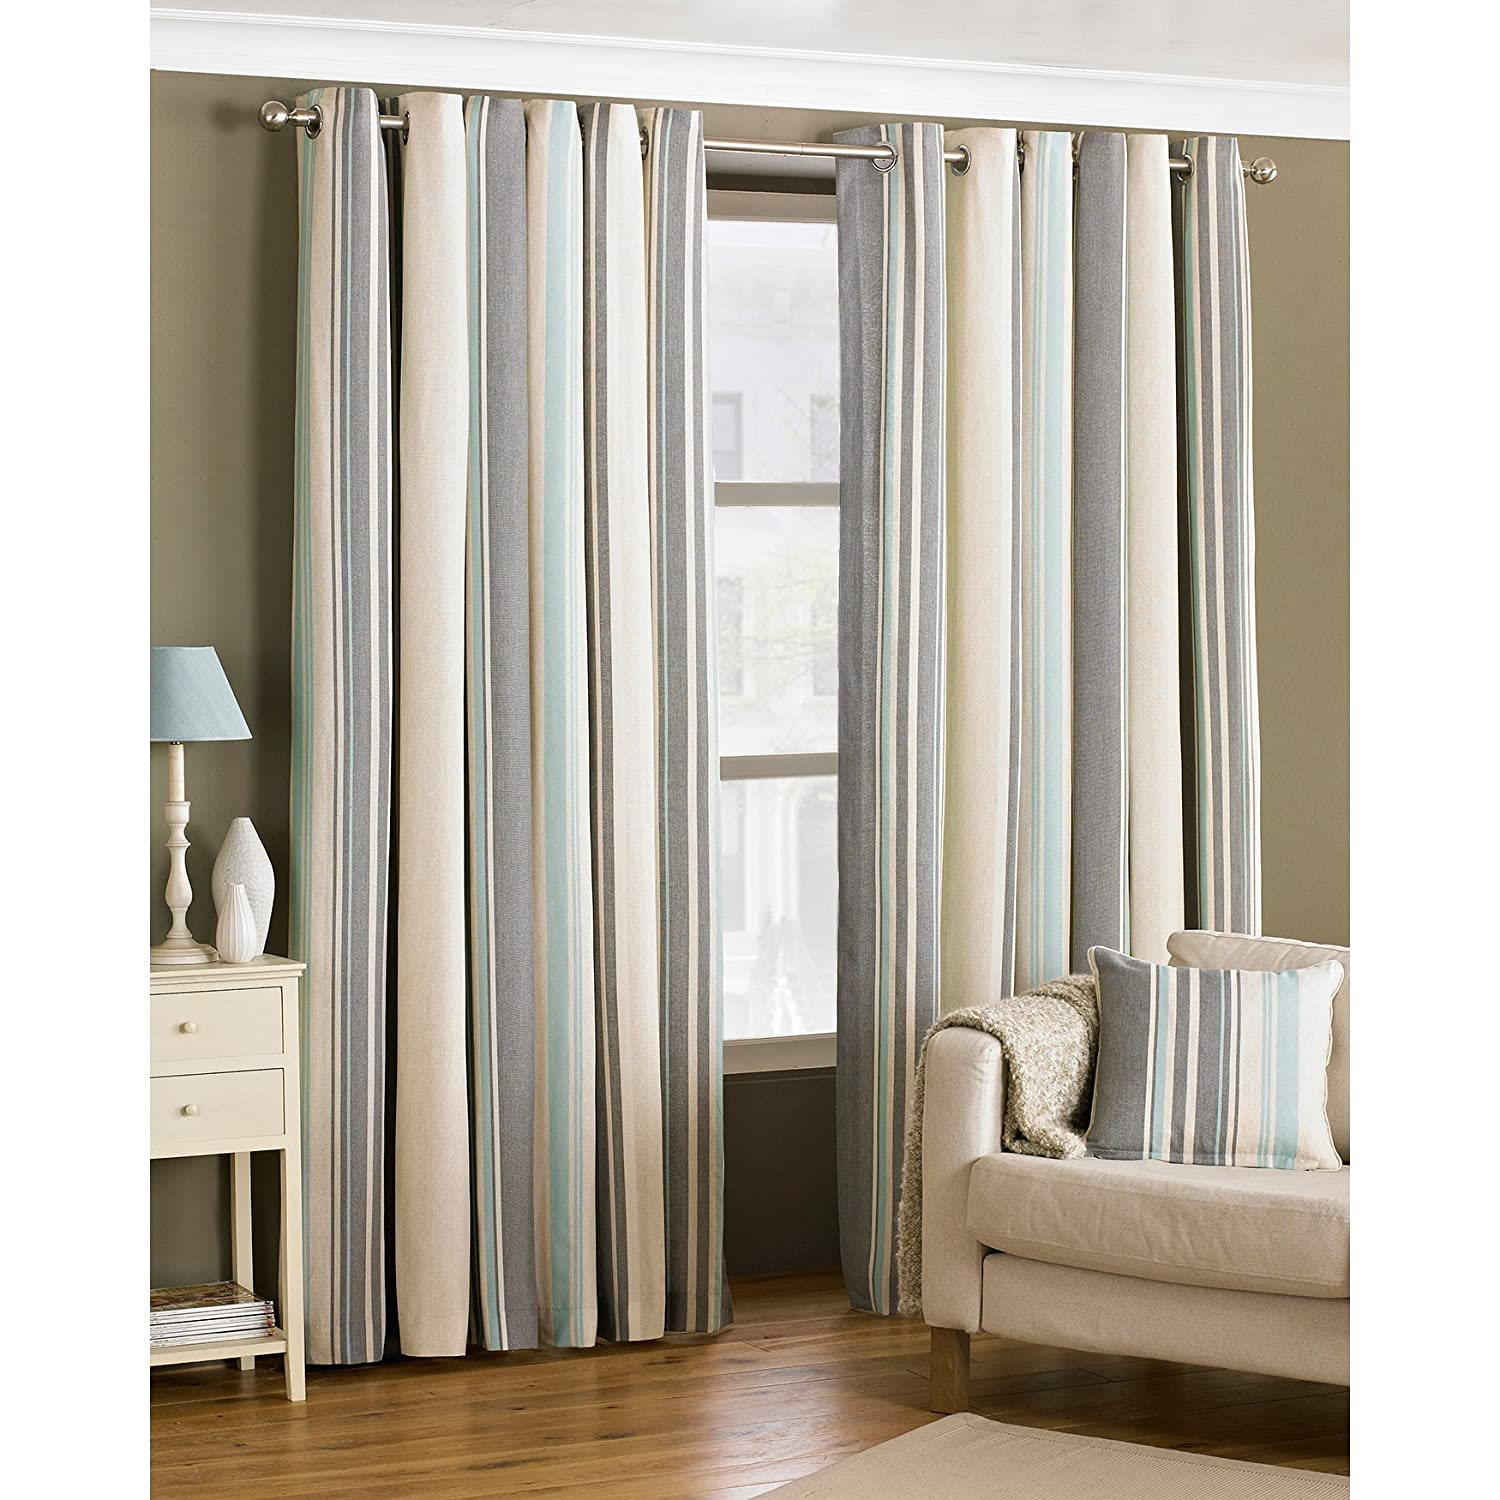 Riva Paoletti Broadway Ringtop Eyelet Curtains Pair